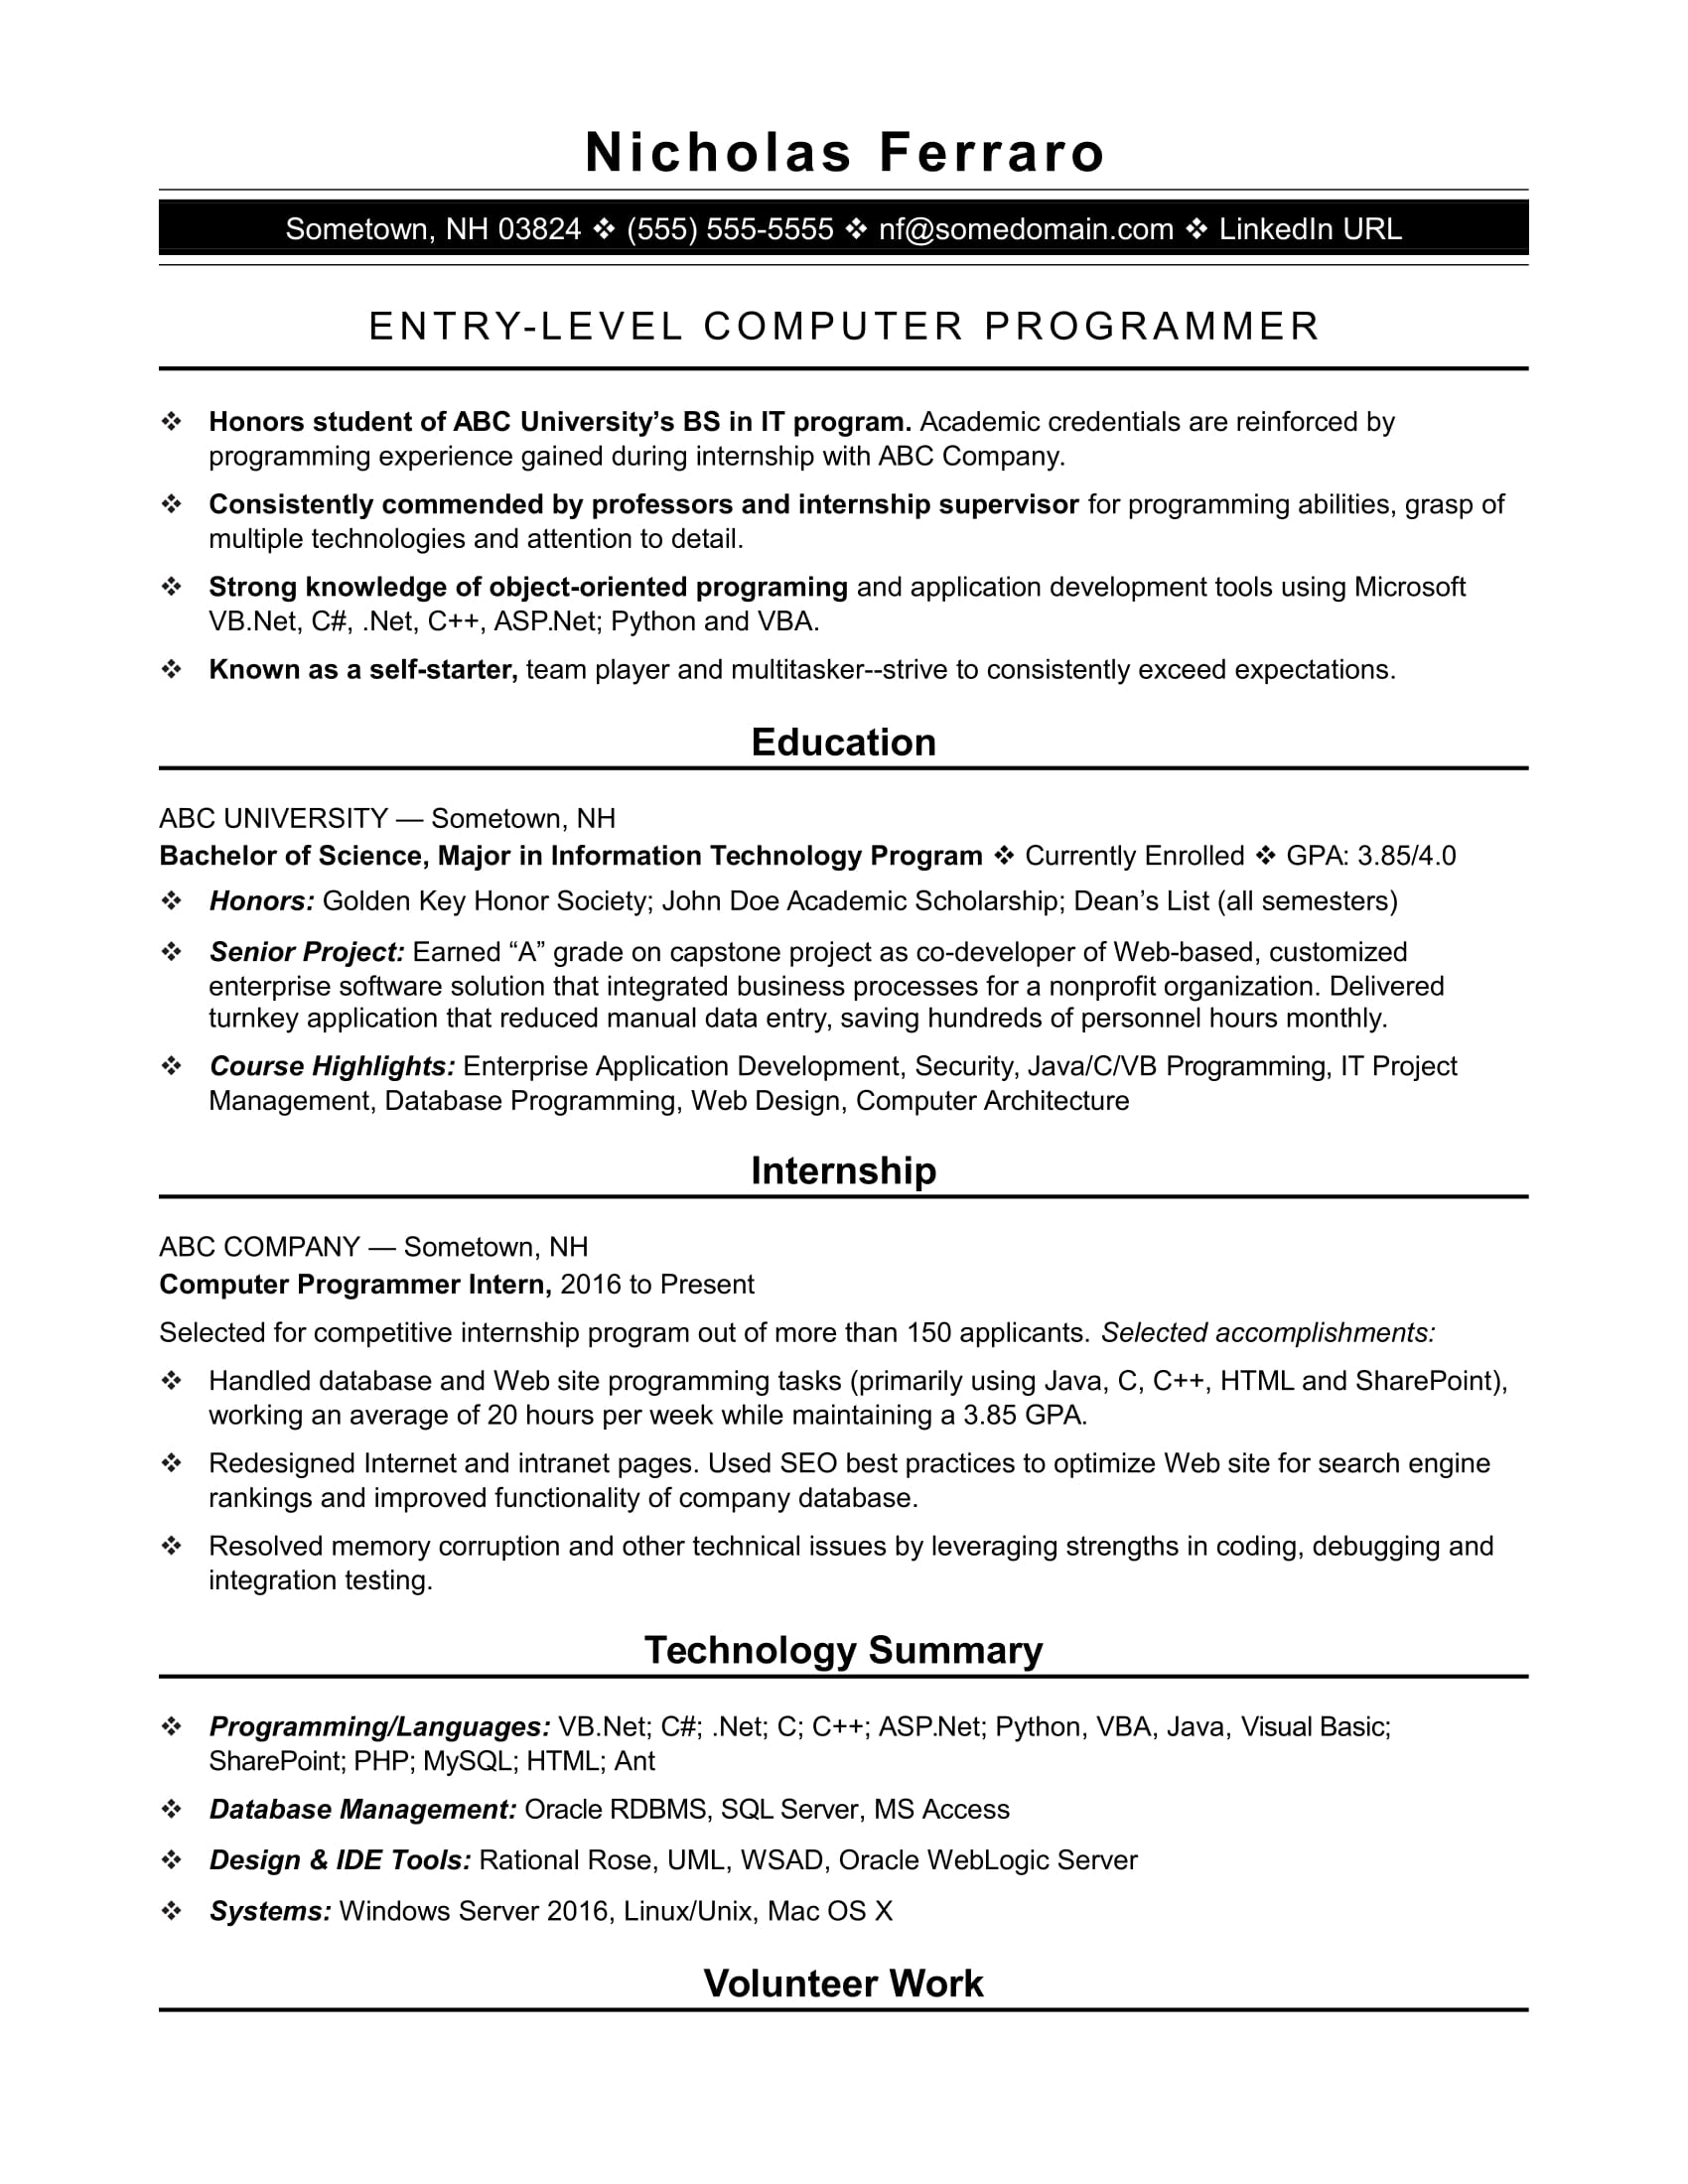 Computer Programming Skills Resume Sample Resume For An Entry Level Computer Programmer